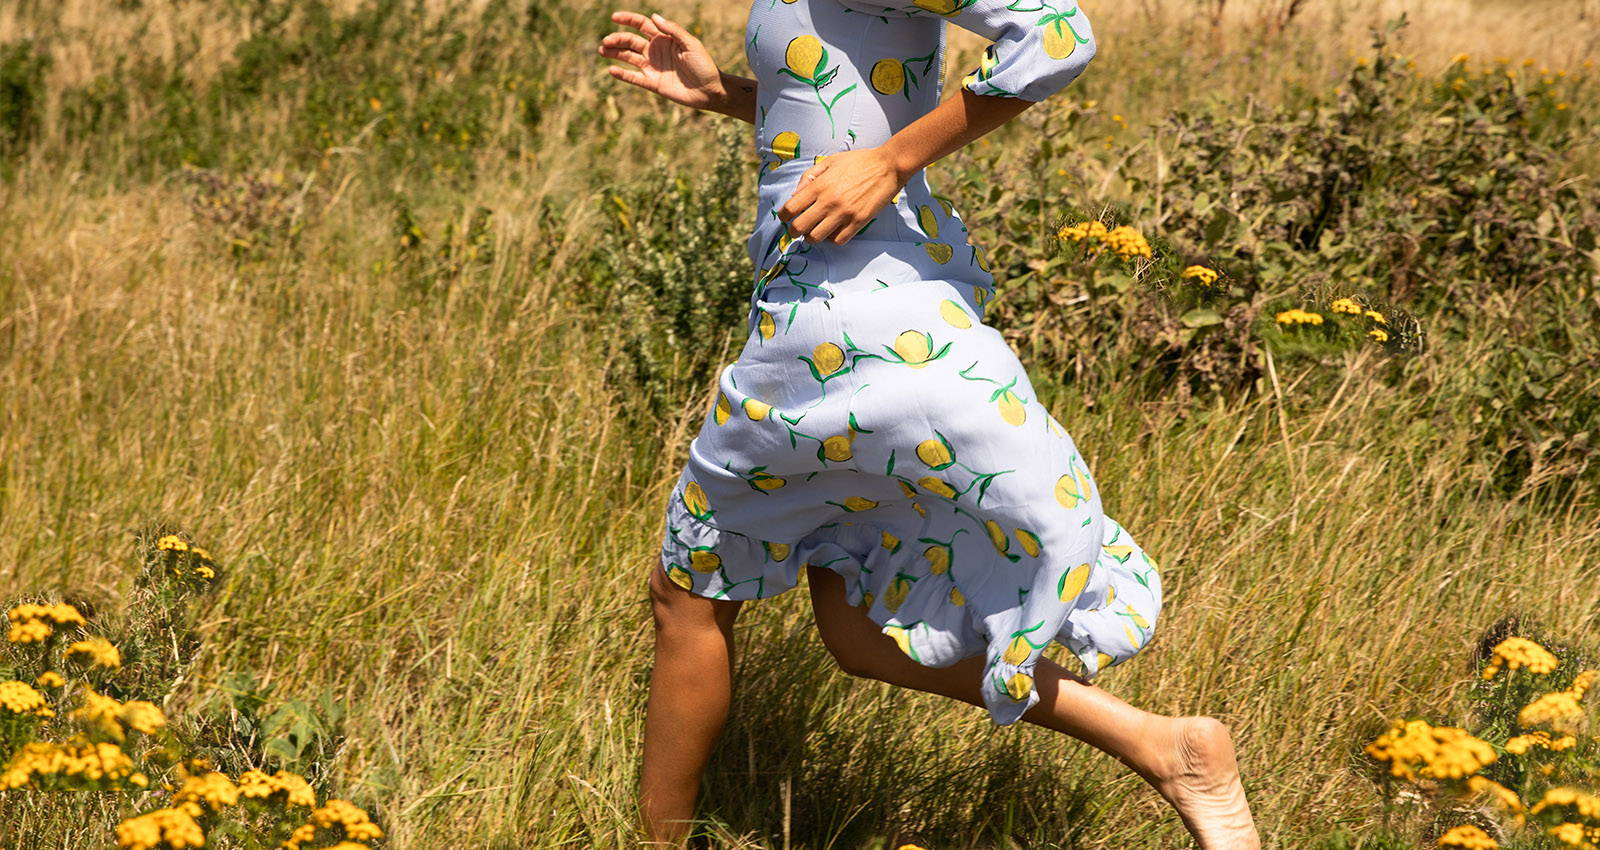 Miquita Oliver running through a field of flowers wearing YOLKE's  Lemon Calamity Dress